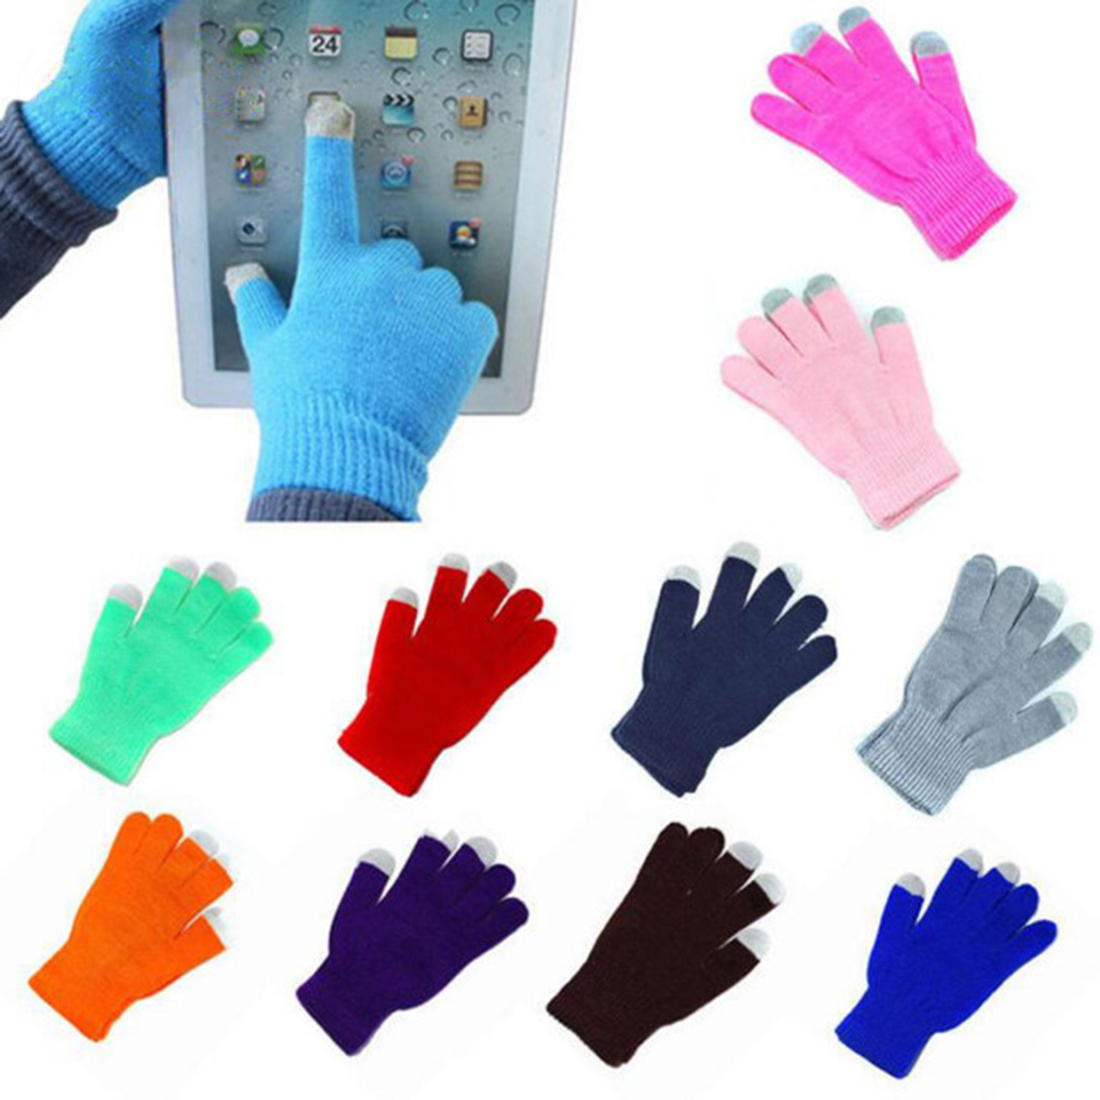 Winter Mittens Gloves Soft Men Women Touch Screen Gloves Texting Cap Active Smart Phone Knit Wrist Long Gloves Handschoenen Red